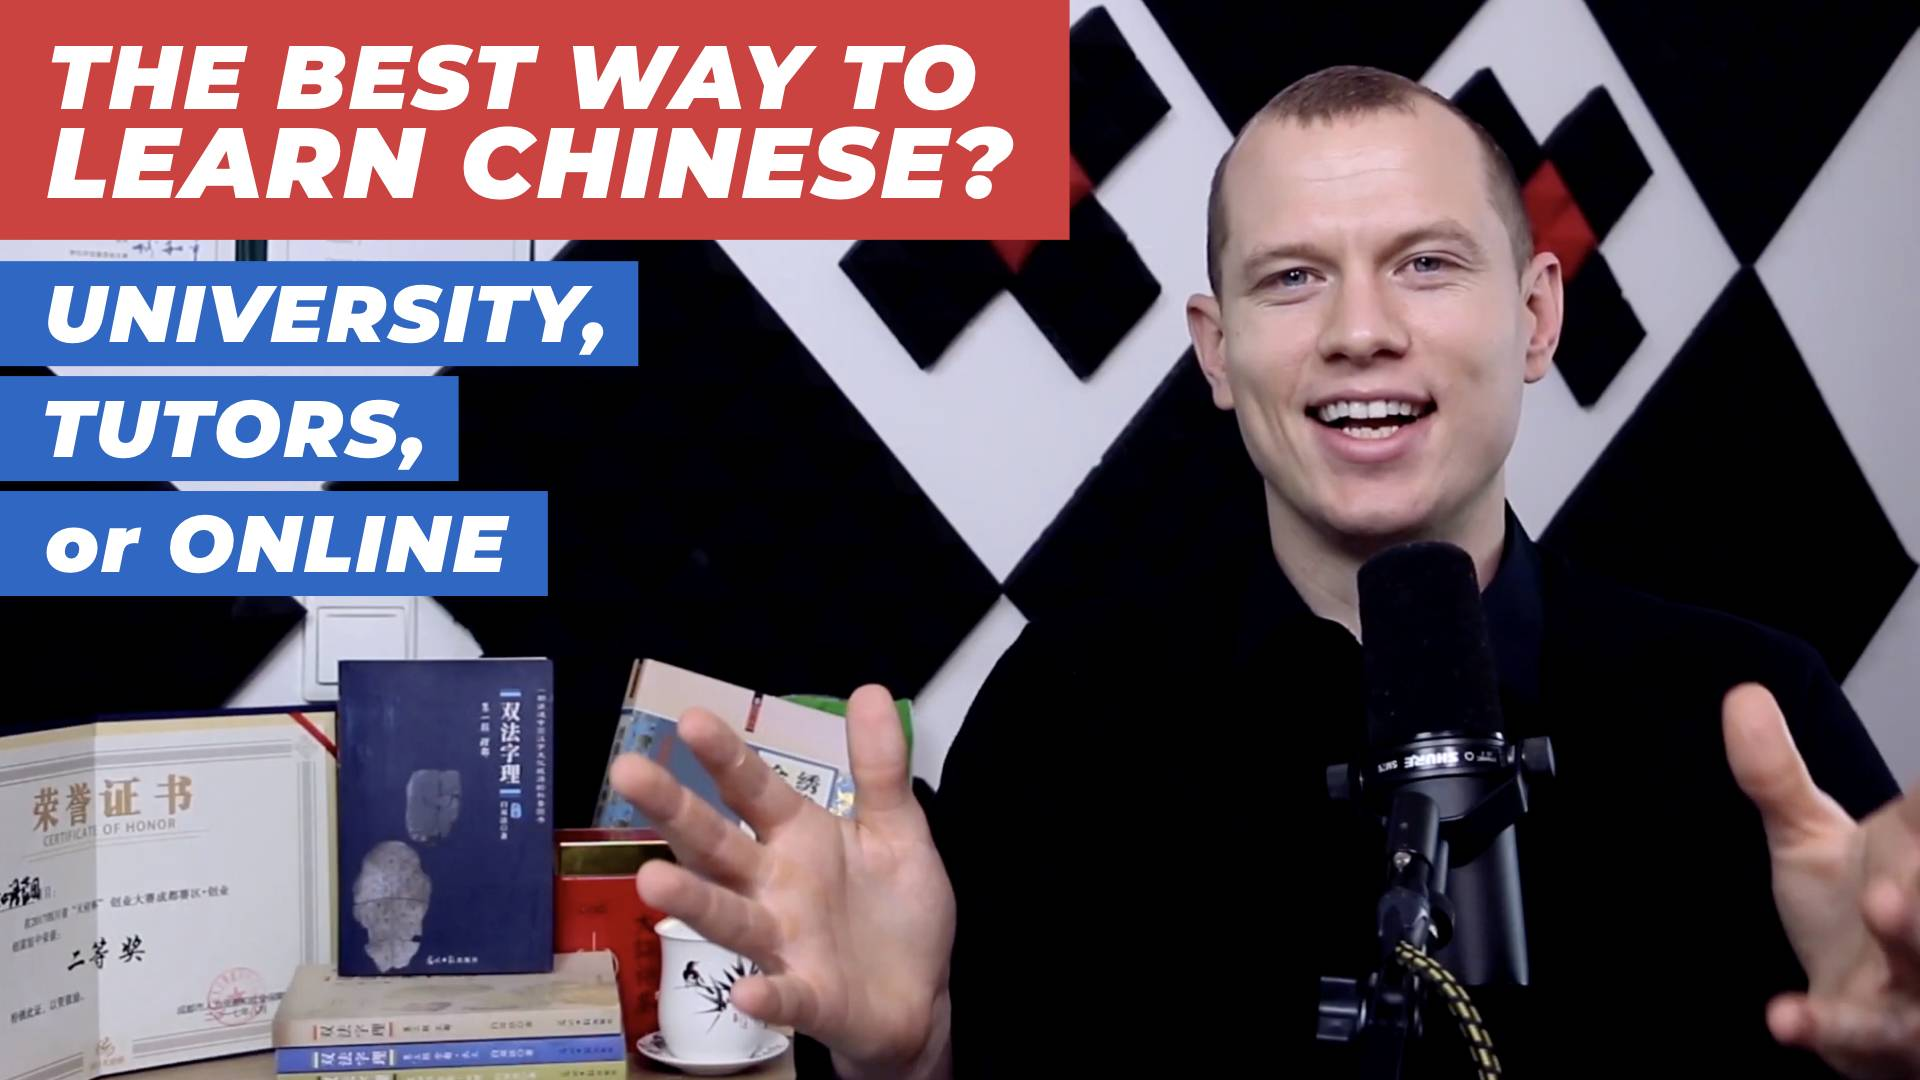 what's the best way to learn Chinese